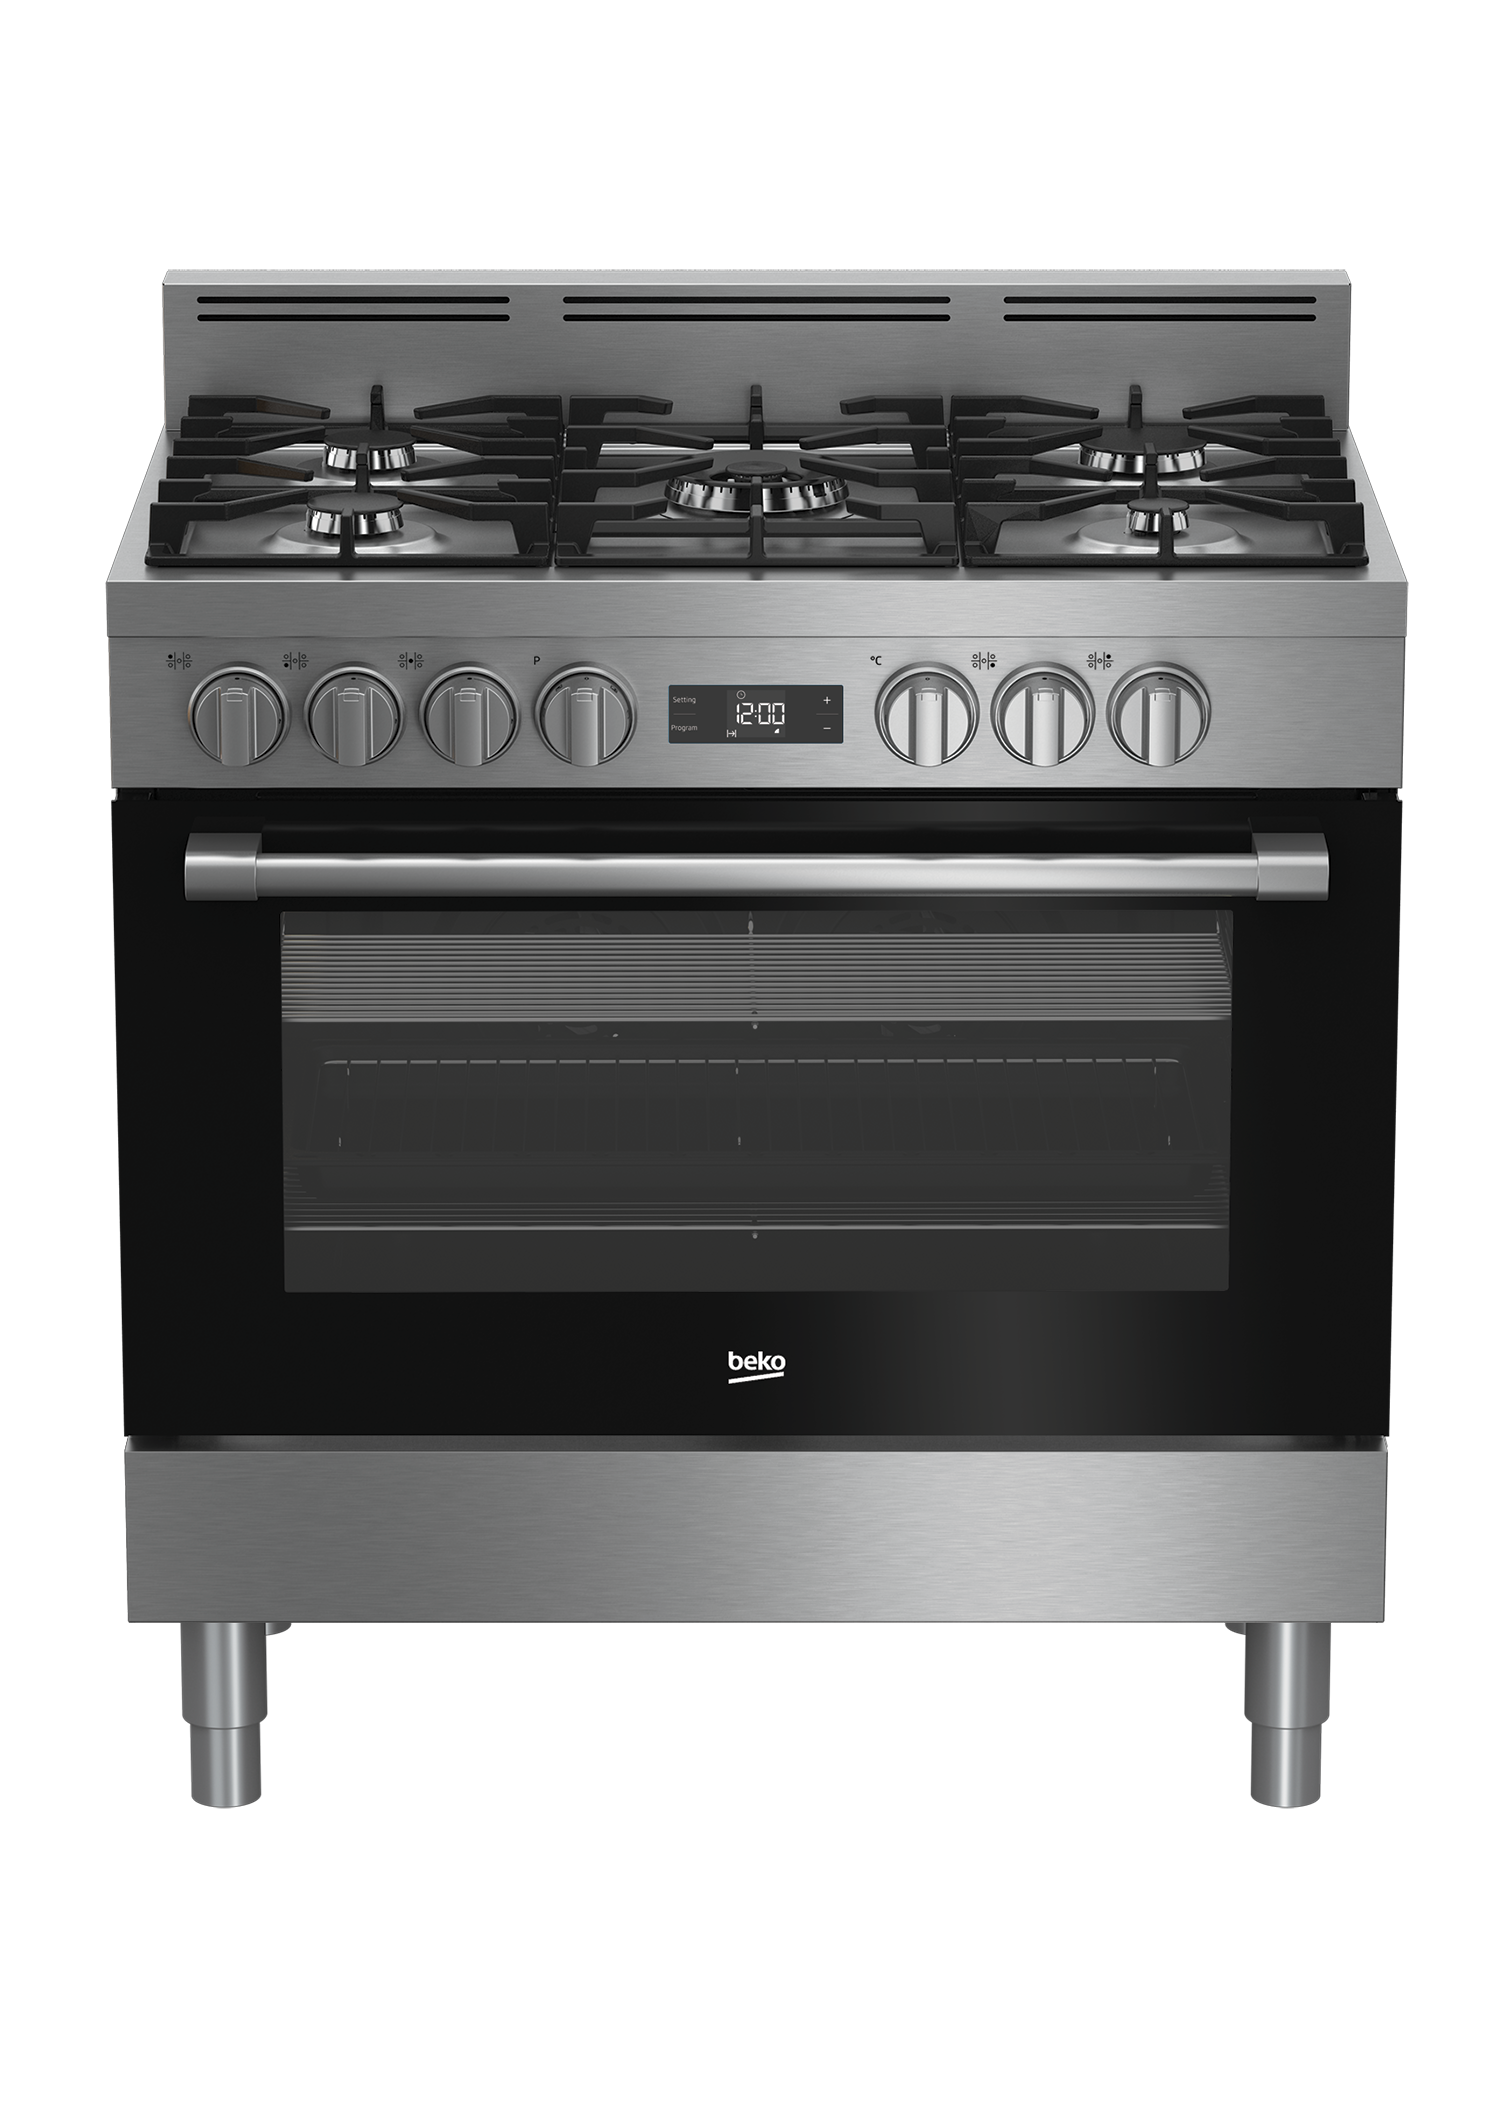 Freestanding Cooker (Multi-functional, 90 cm) BFC916GMX1